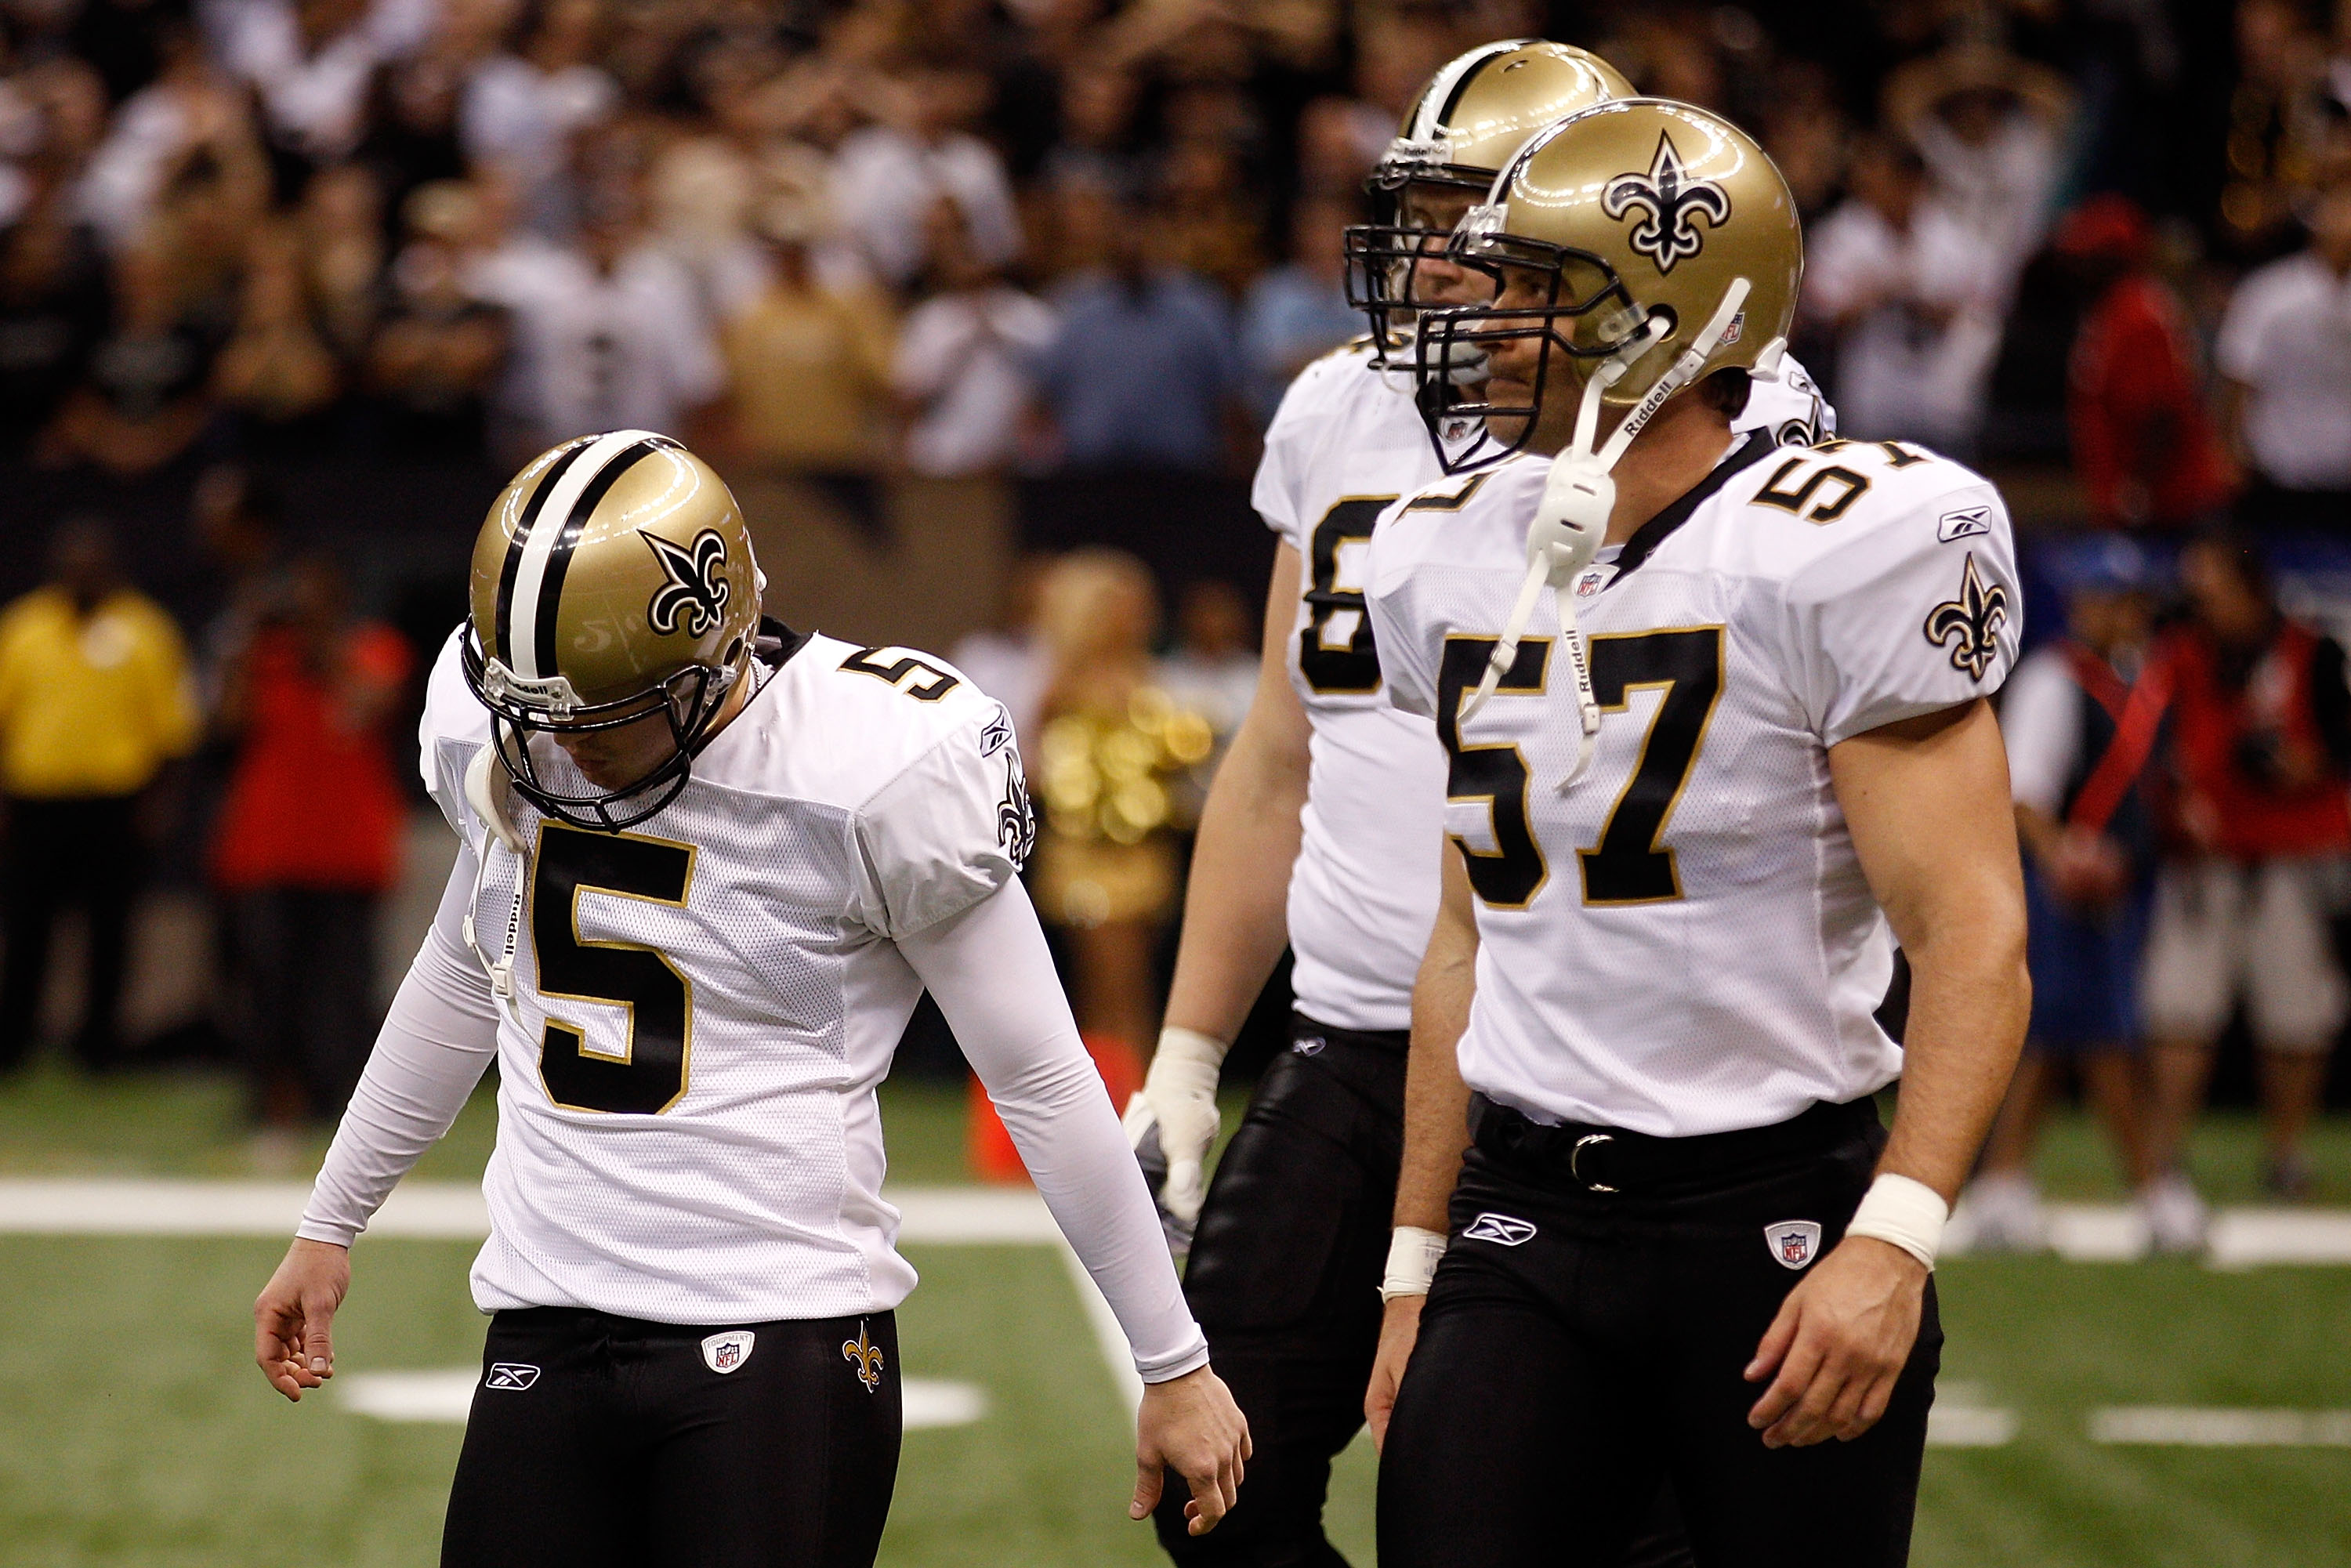 NEW ORLEANS - SEPTEMBER 26:  Garrett Hartley #5 of the New Orleans Saints reacts to missing a field goal in overtime against the Atlanta Falcons at the Louisiana Superdome on September 26, 2010 in New Orleans, Louisiana. The Falcons defeated the Saints 27